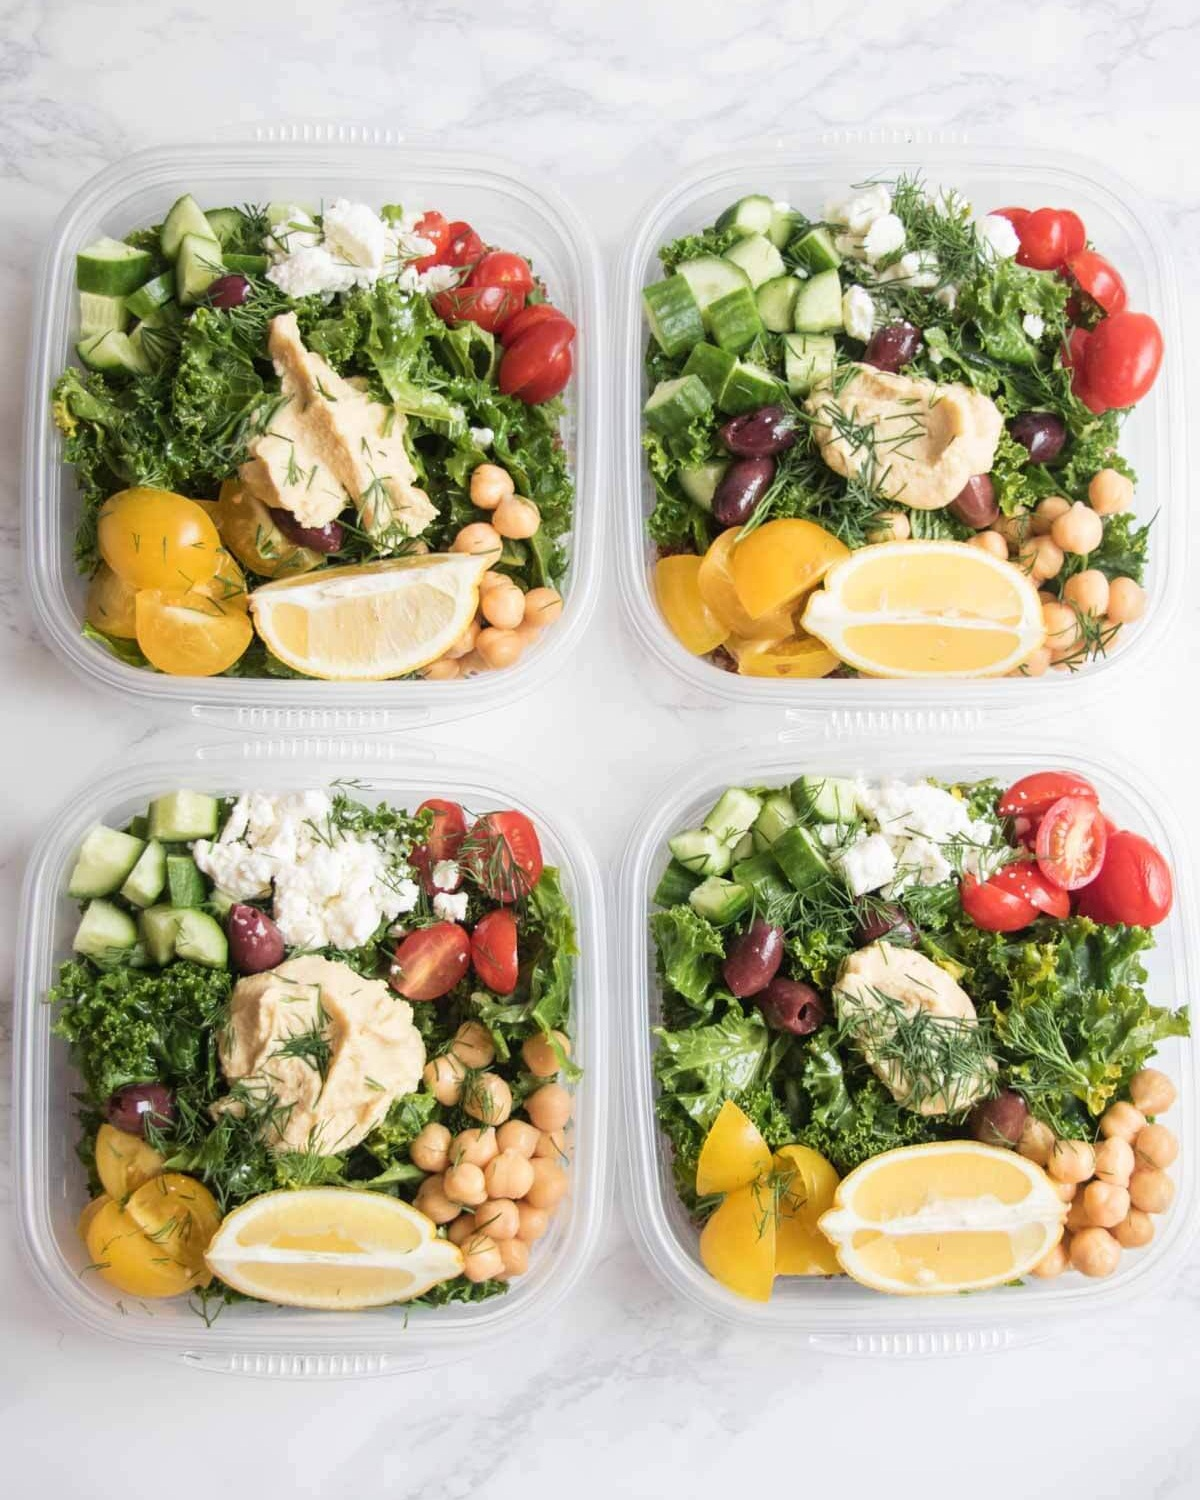 Get Preppin' - planning, preparing and packaging your meals